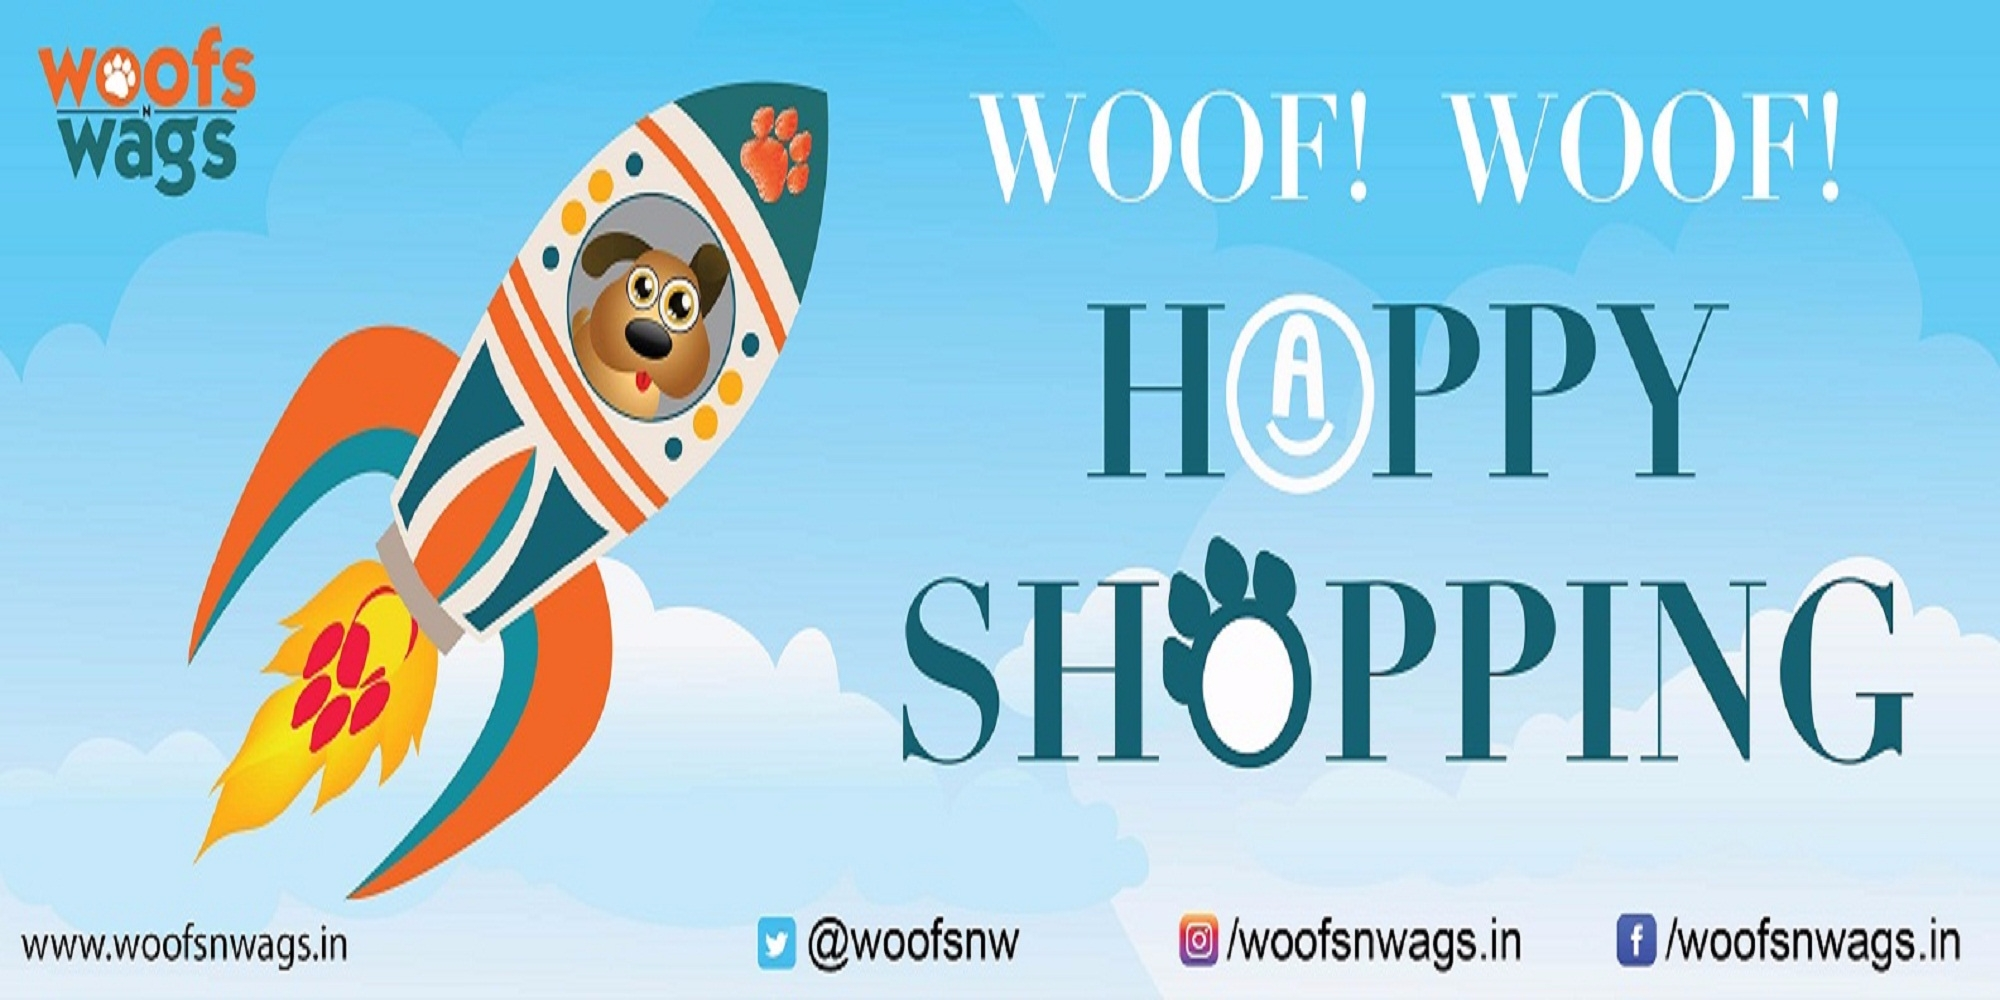 Woofsnwags.in (@woofsnwags) Cover Image